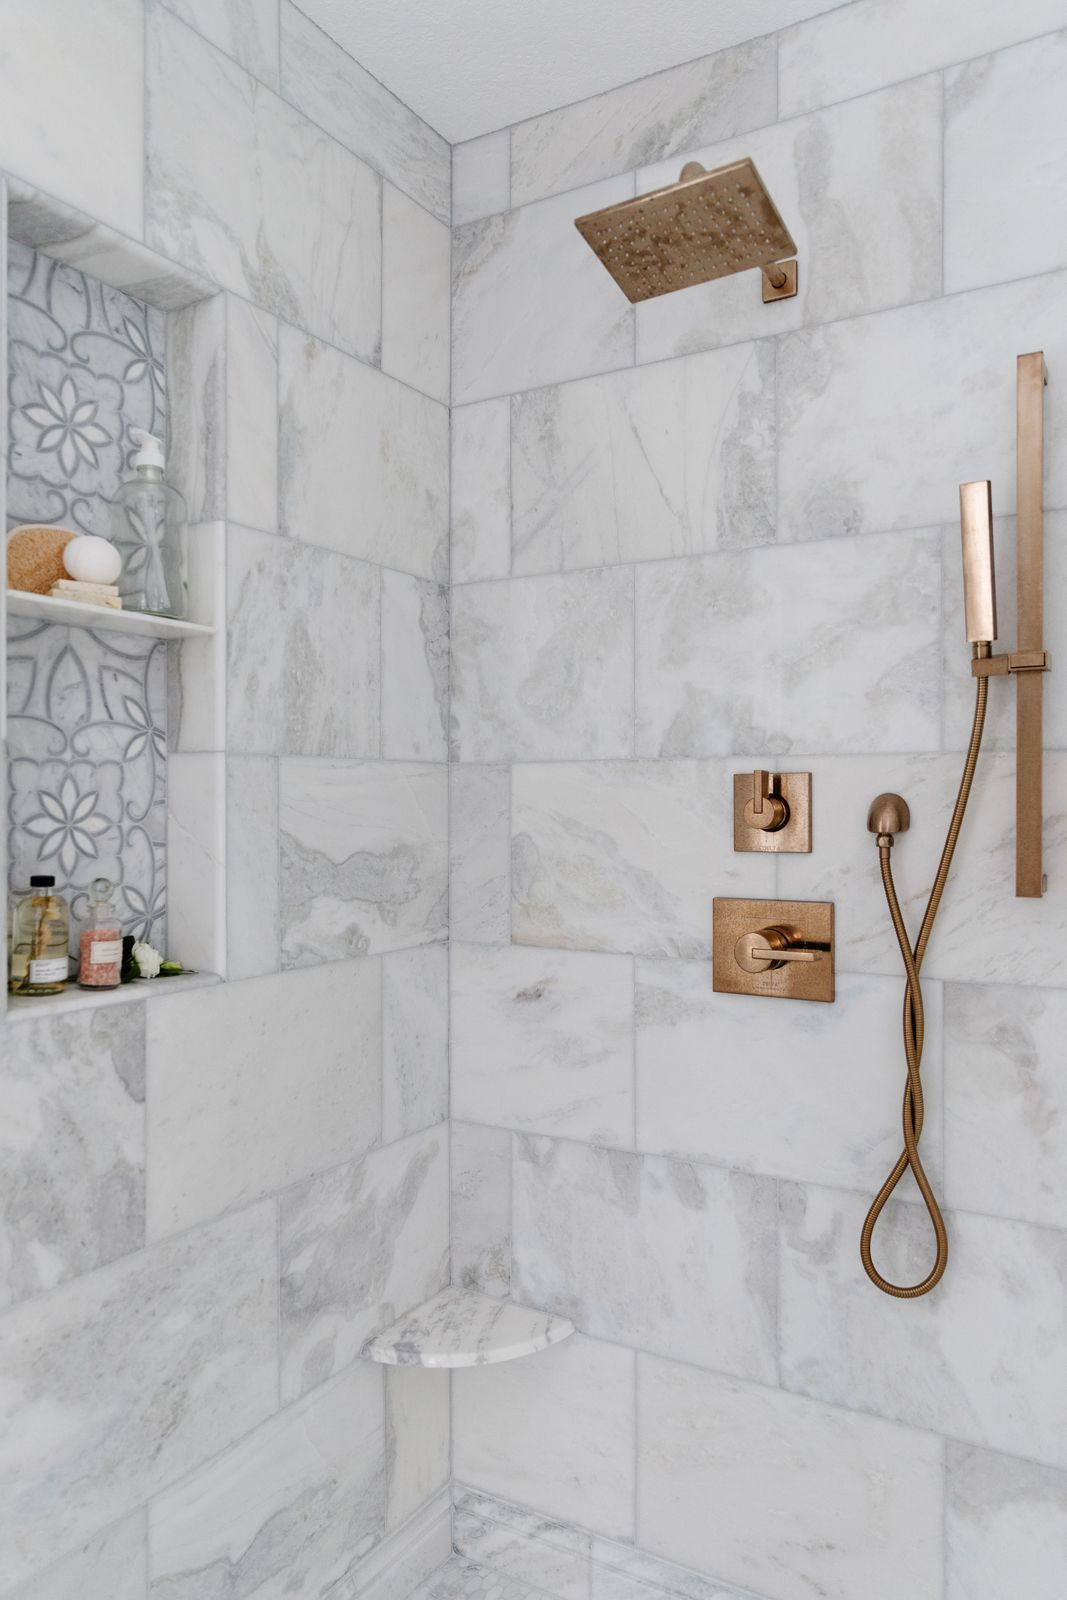 Modern bathroom with square shower fixture.